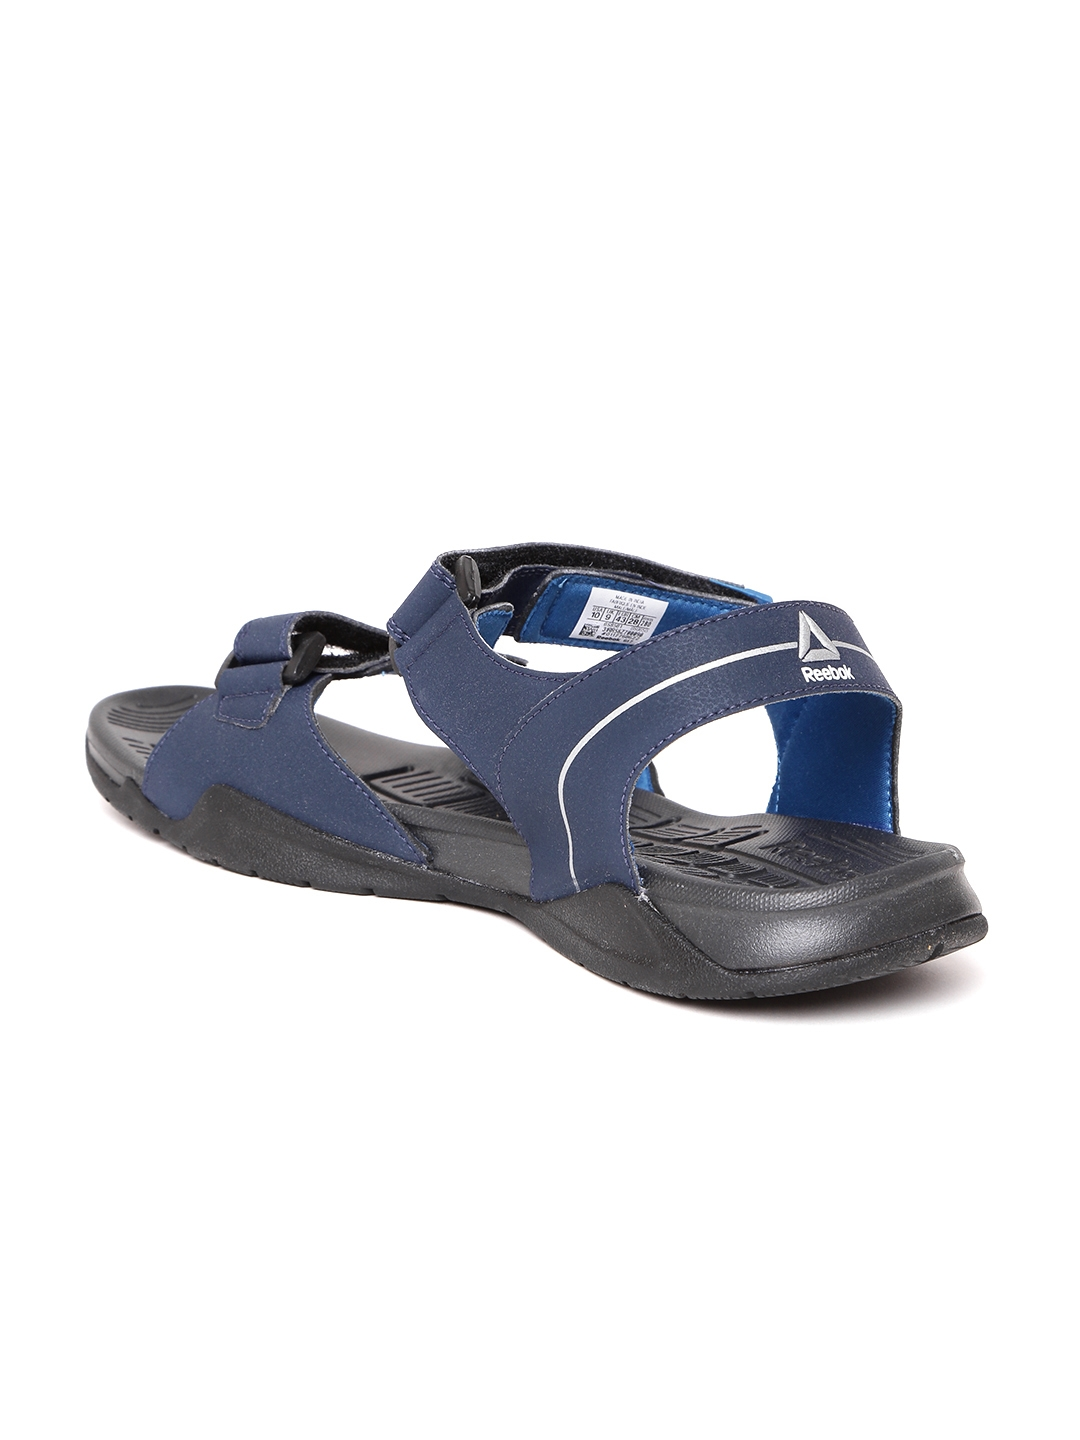 606d6c5ee Reebok Men Navy Z Stunner Sports Sandals. This product is already at its best  price